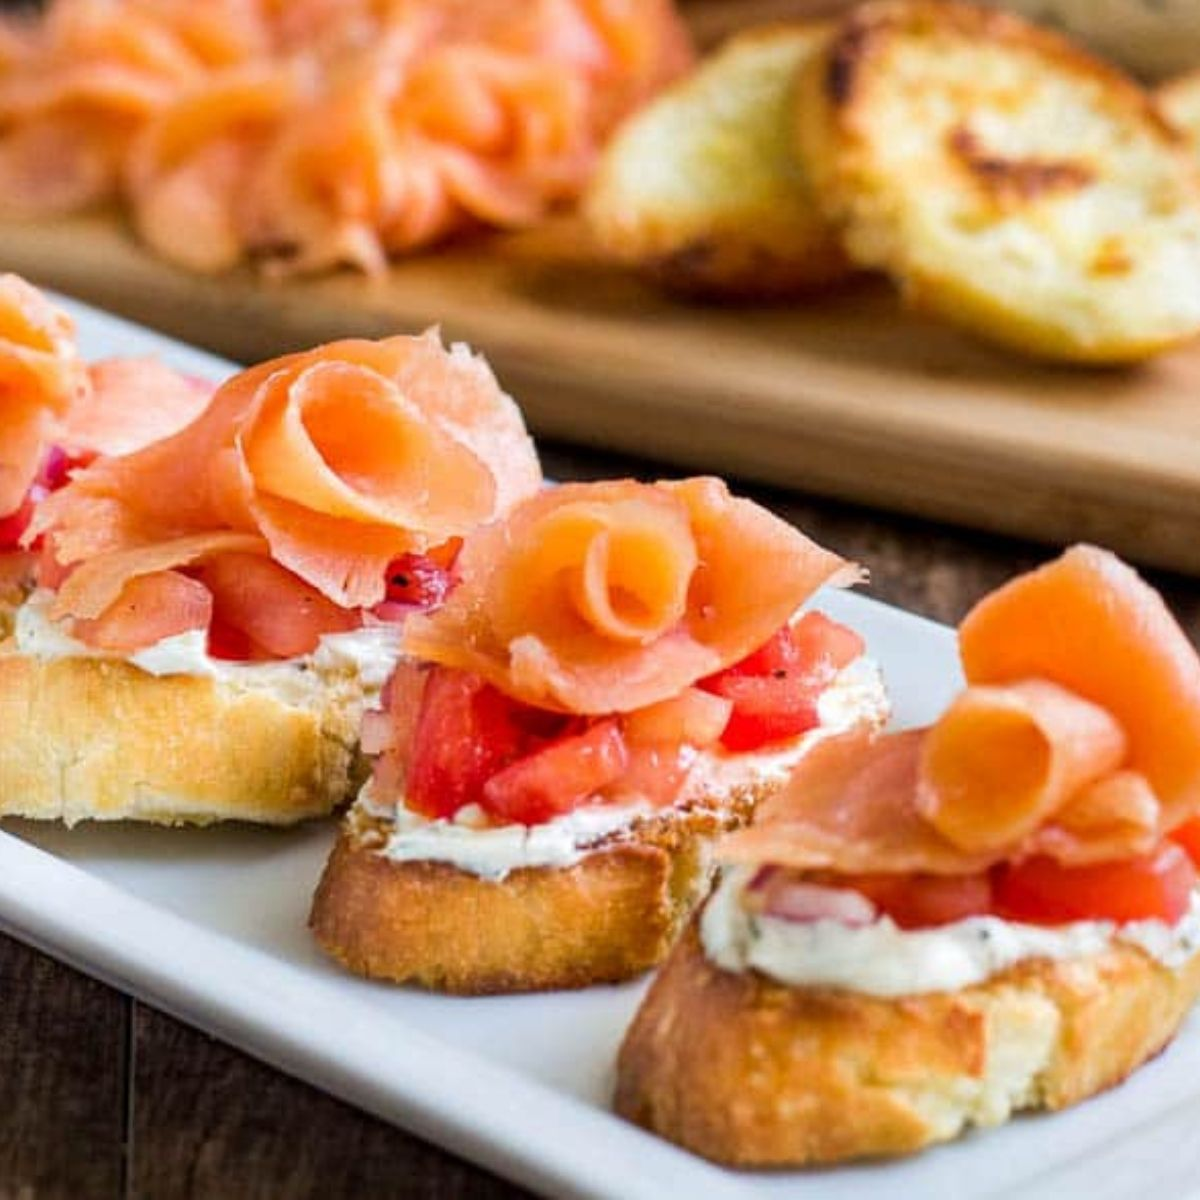 19. Smoked Salmon Crostini - DIY Cocktail Micro Wedding: Top 20 Easy Appetizers 2